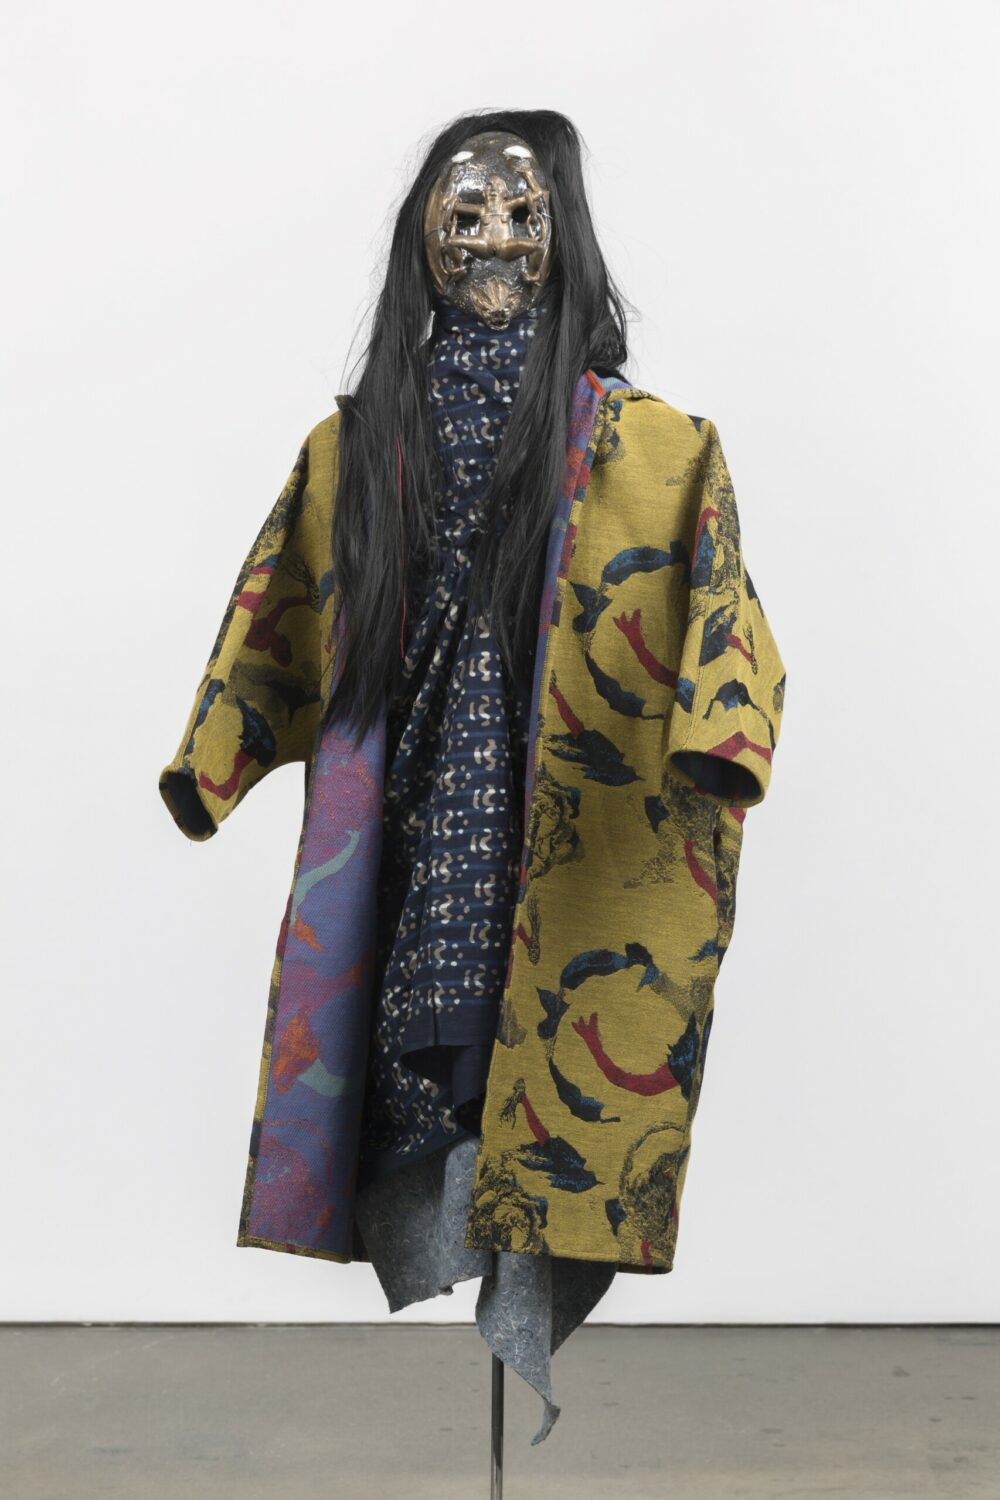 A figure or mannequin wearing a patterned yellow fabric jacket and a long patterned blue scarf, a black wig and a glazed ceramic mask